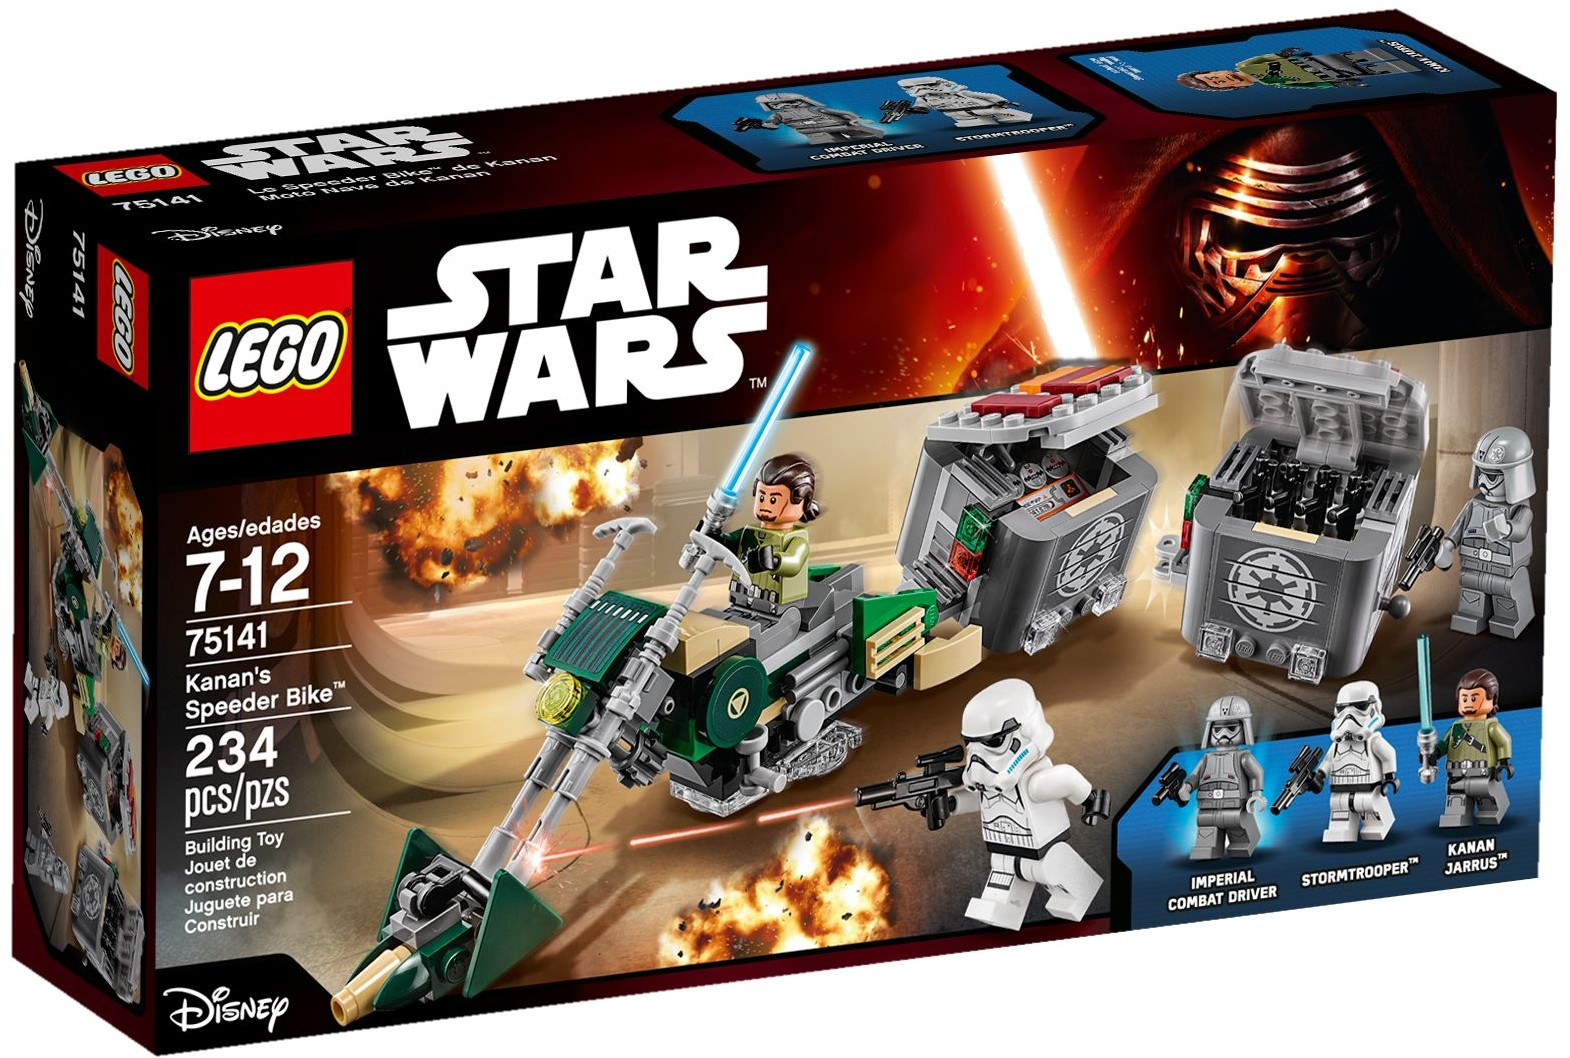 LEGO 75141 - Star Wars - Kanan's Speeder Bike